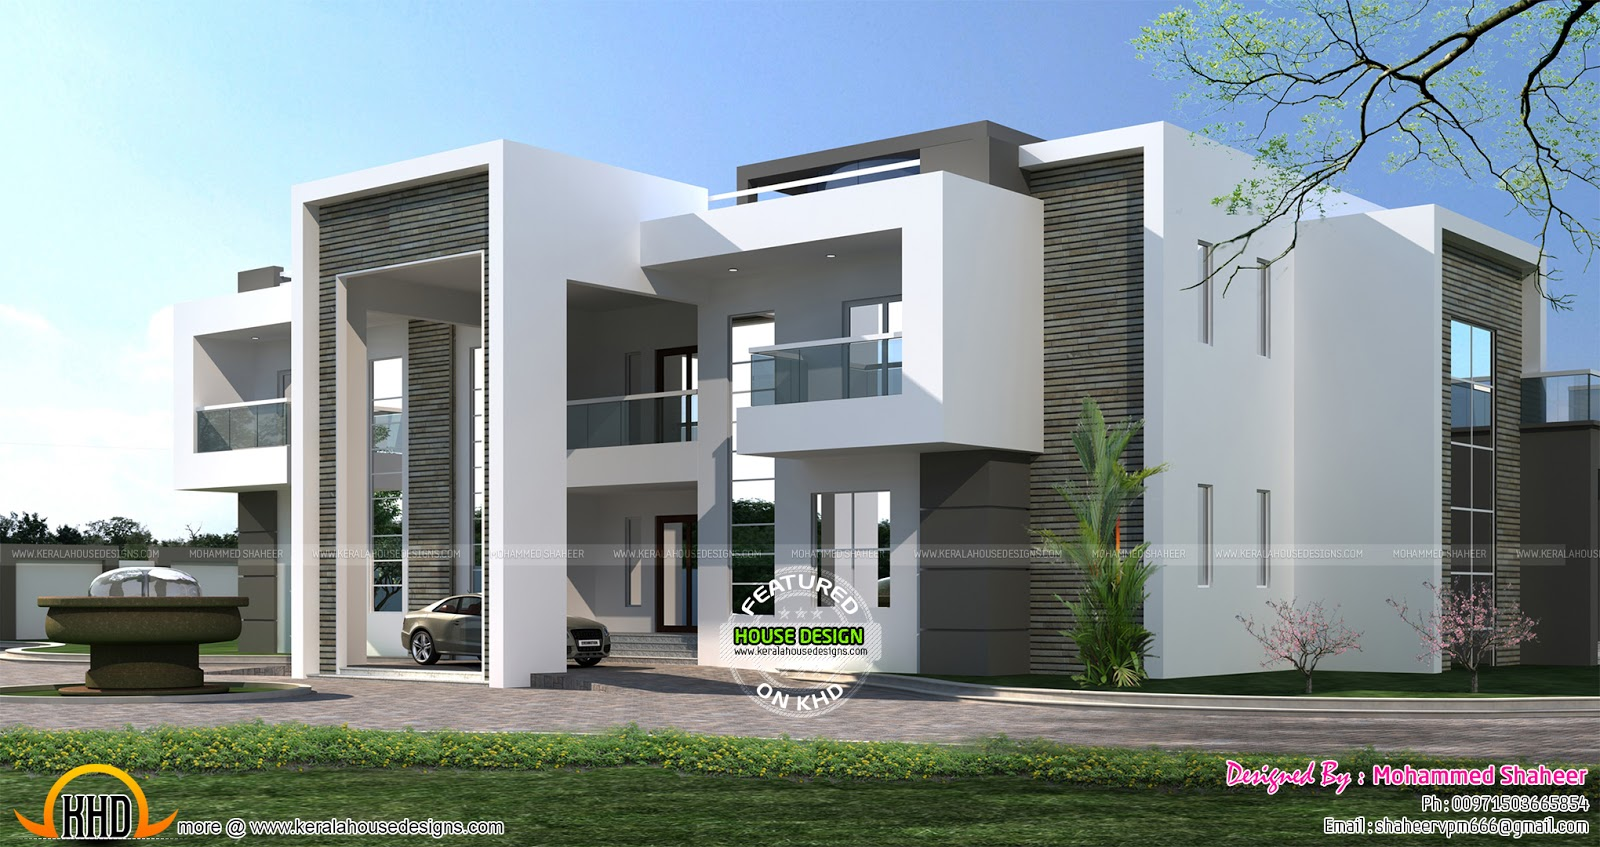 Flat roof arabian house plan kerala home design and floor plans - Housing designs ...